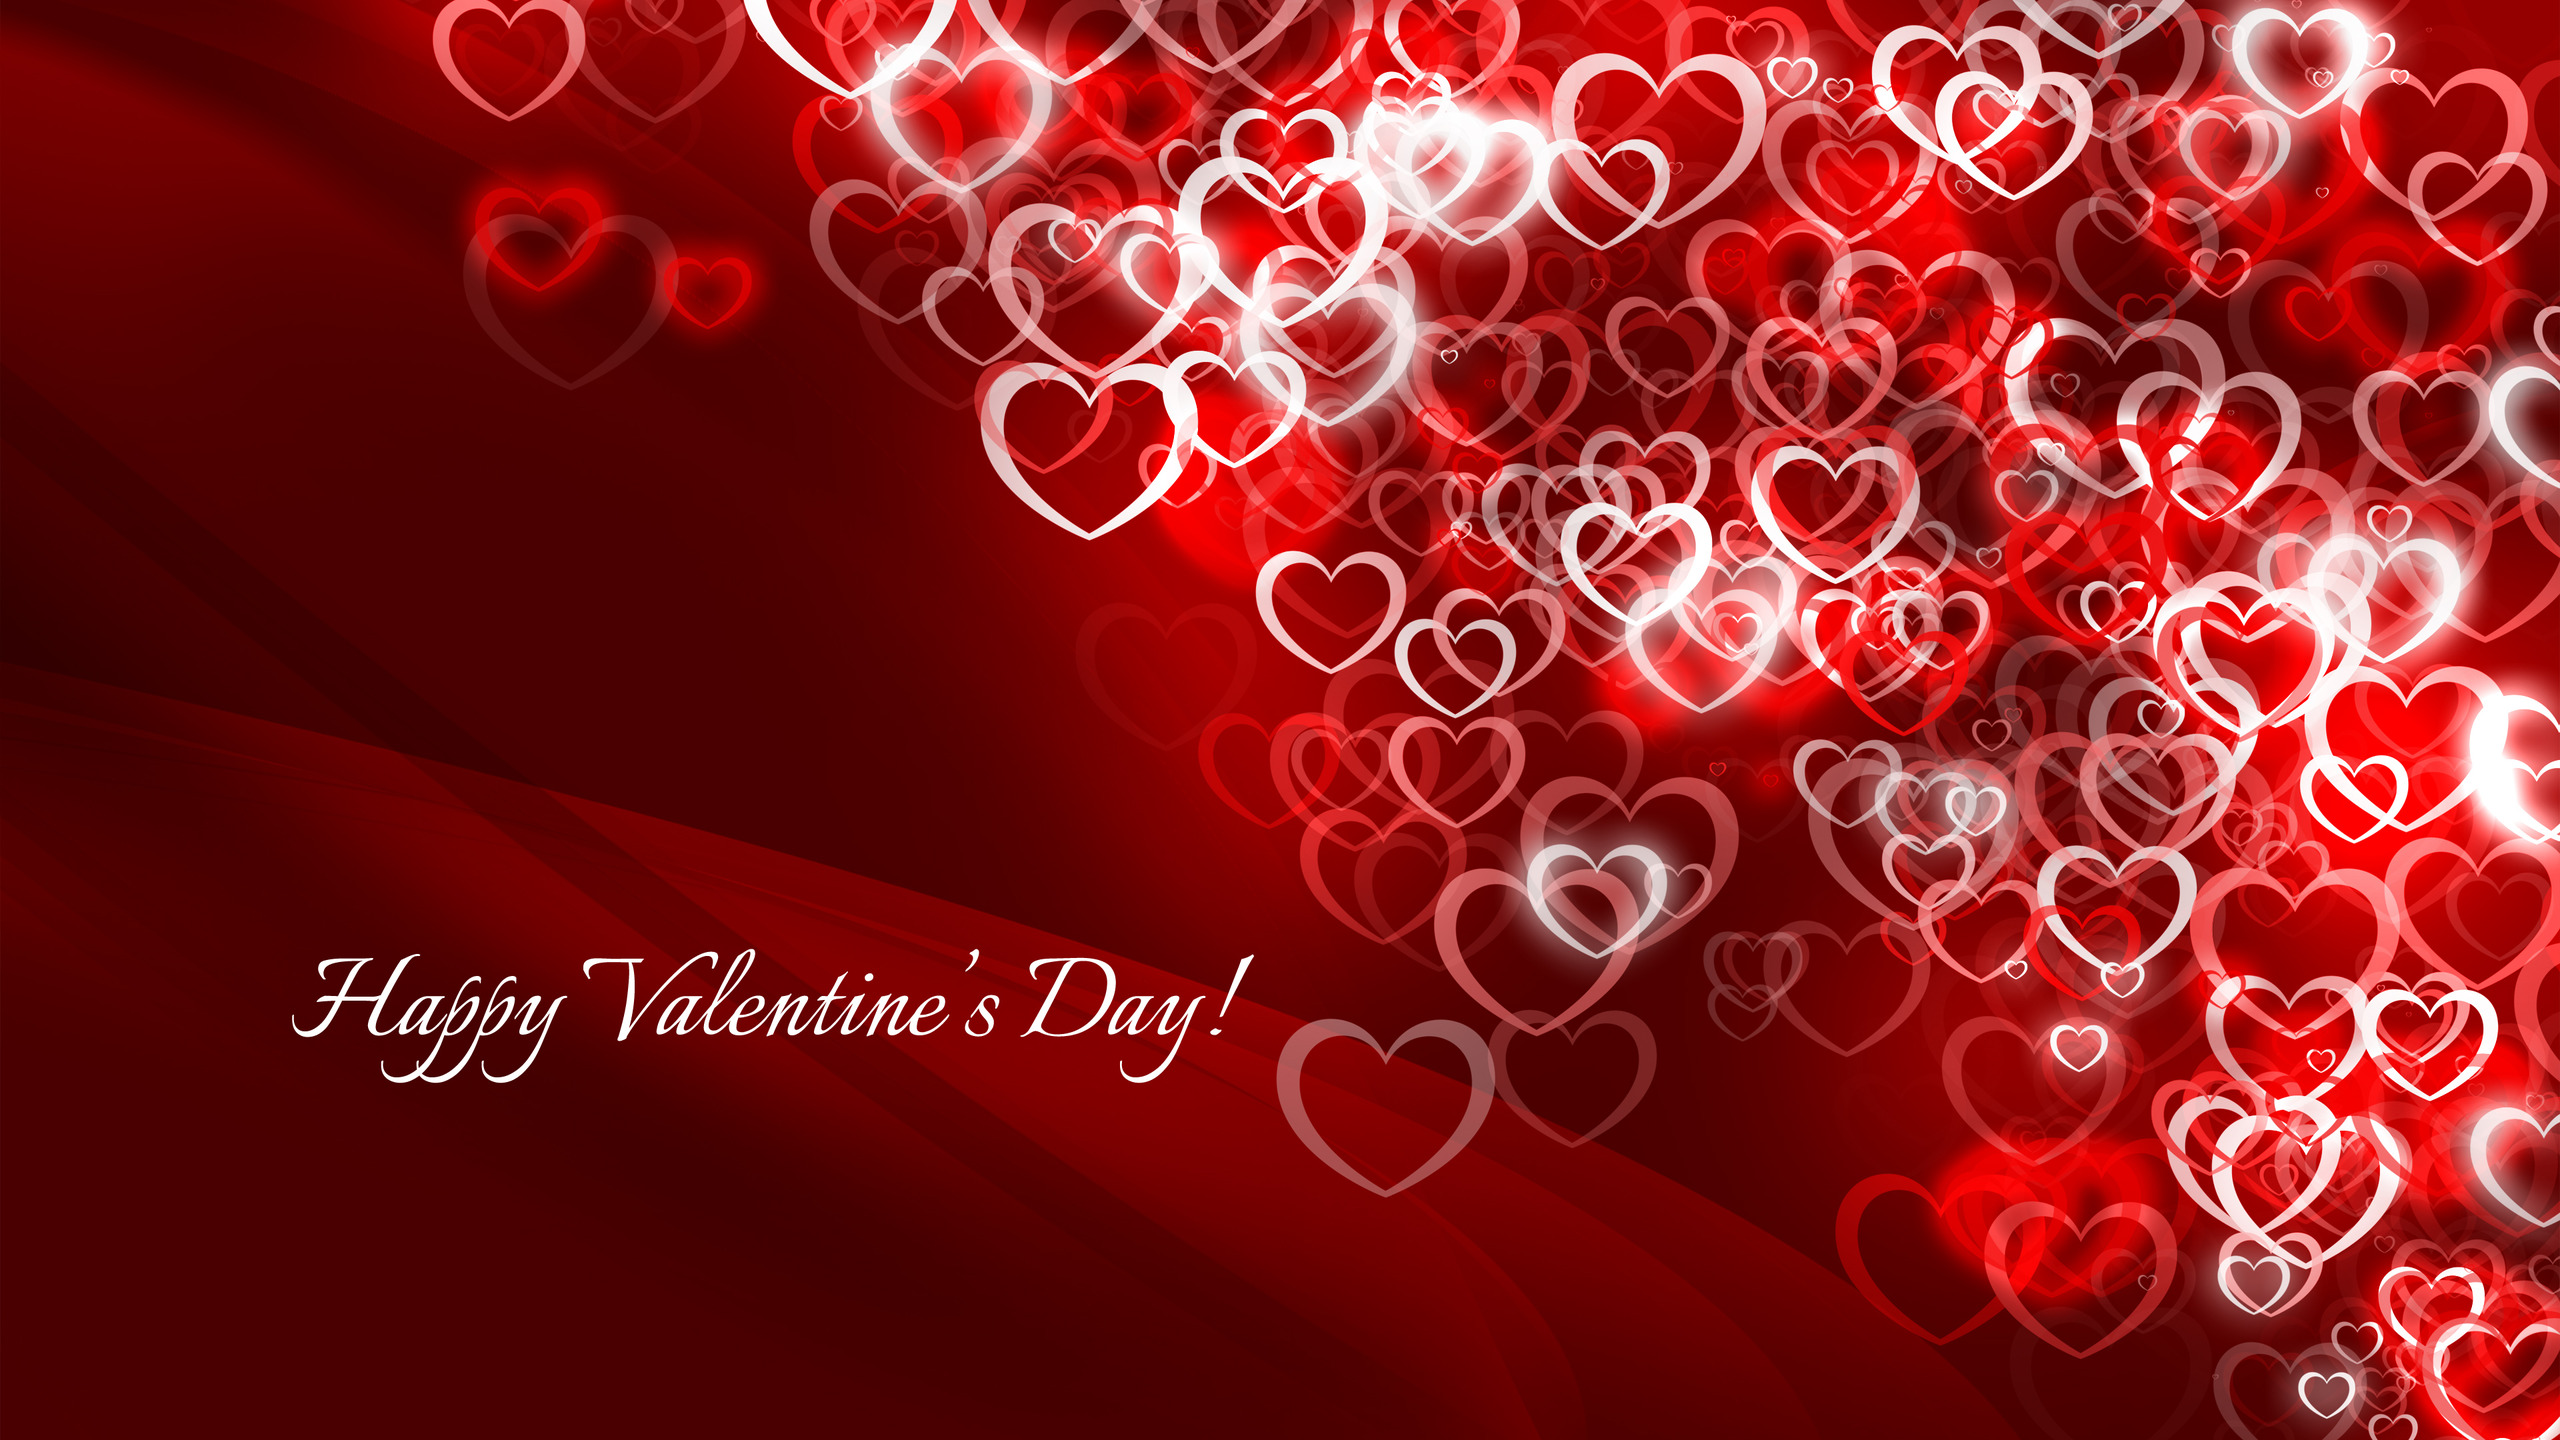 Happy Valentine Day Wallpapers Top Collections of Pictures Images 2560x1440